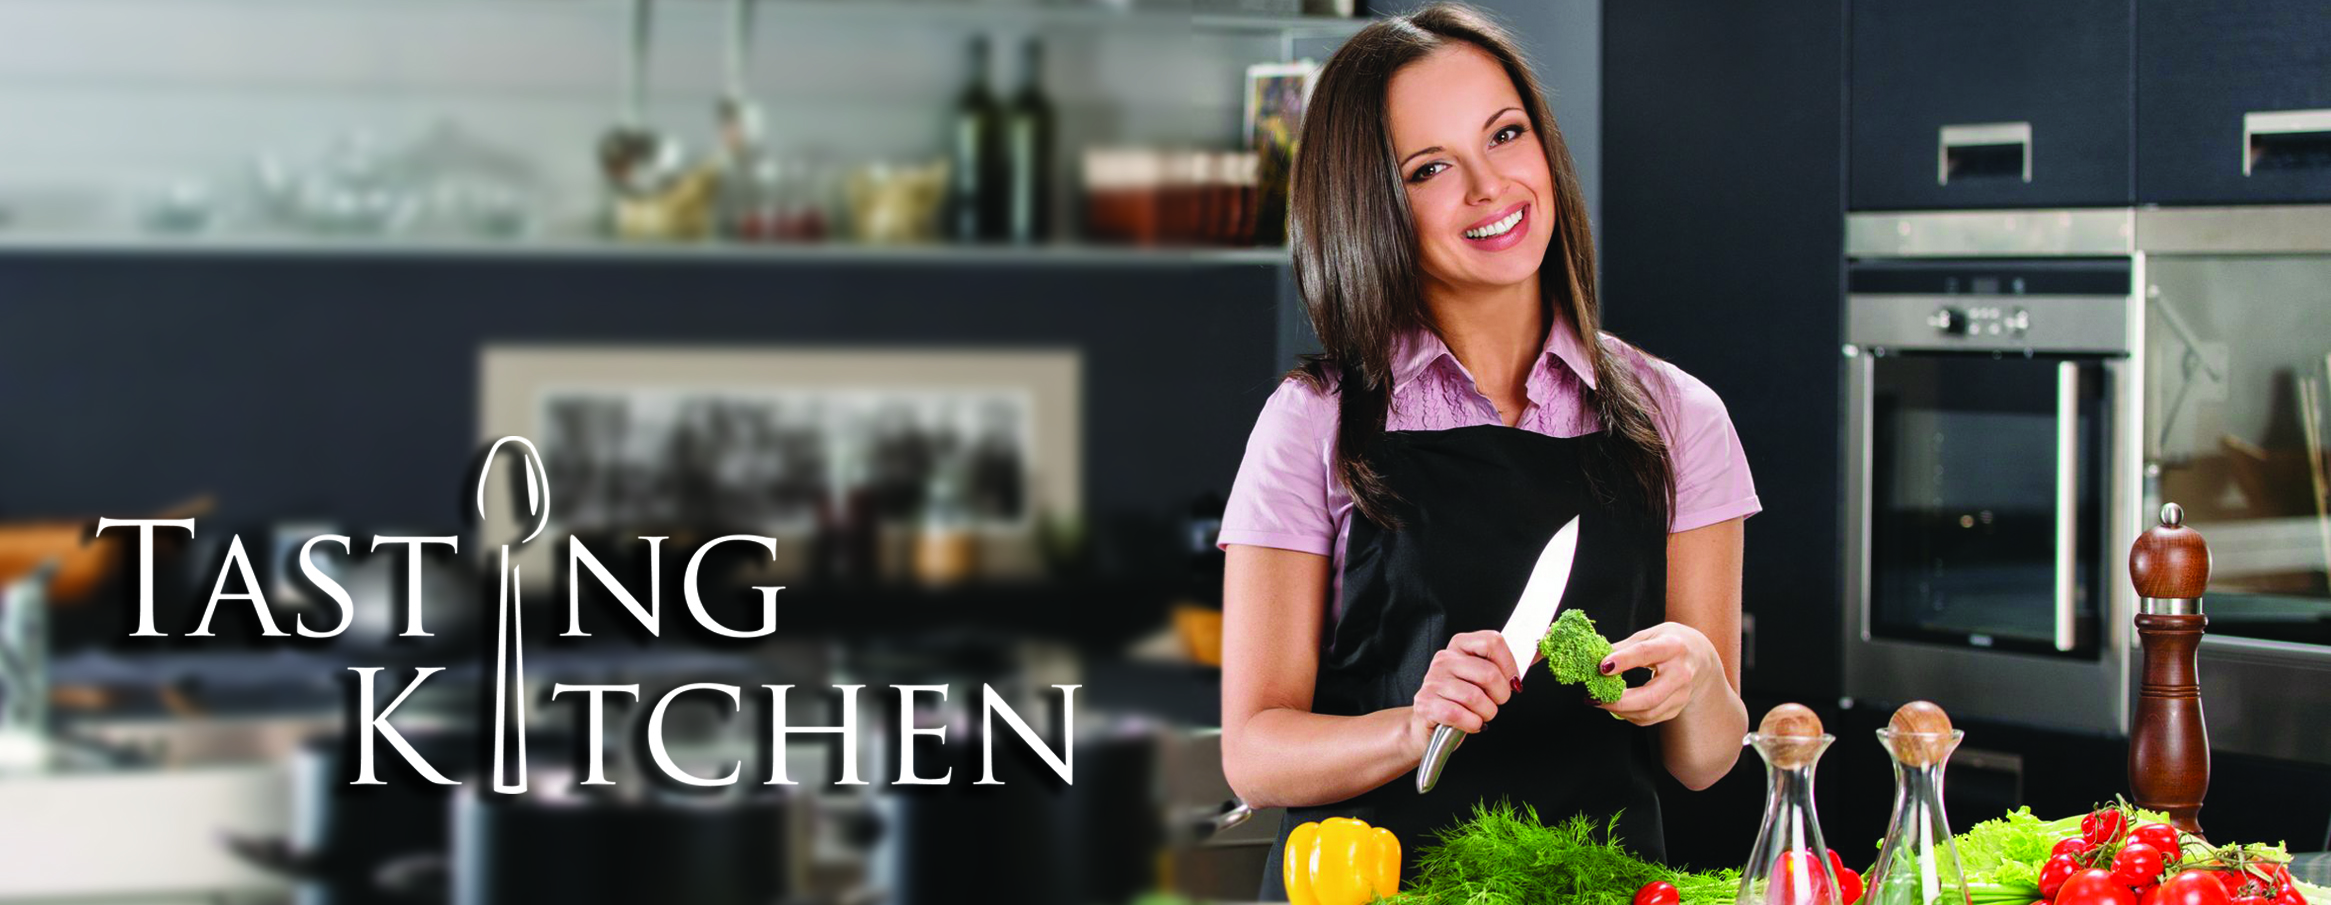 Tasting Kitchen Logo